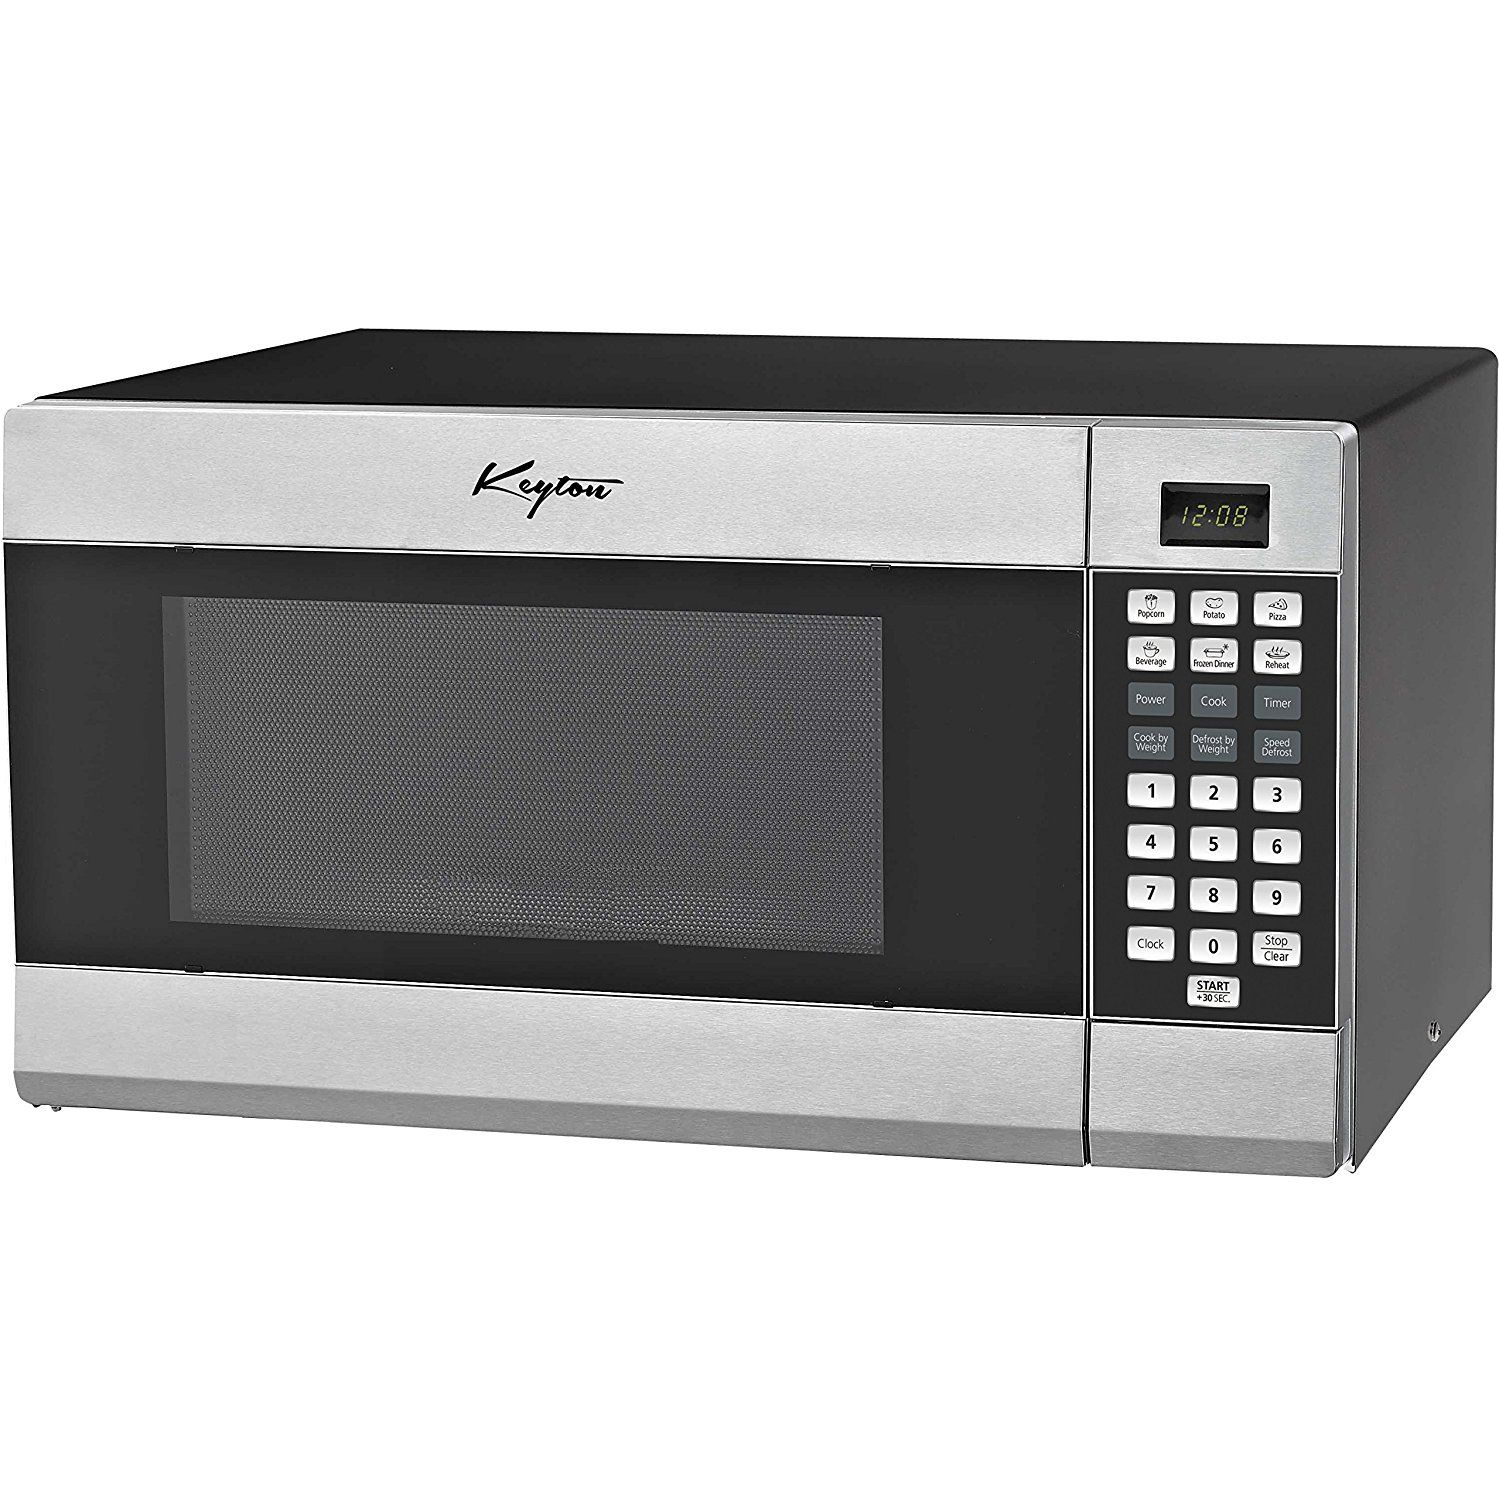 Oster 1 1 Microwave Reviews Bestmicrowave